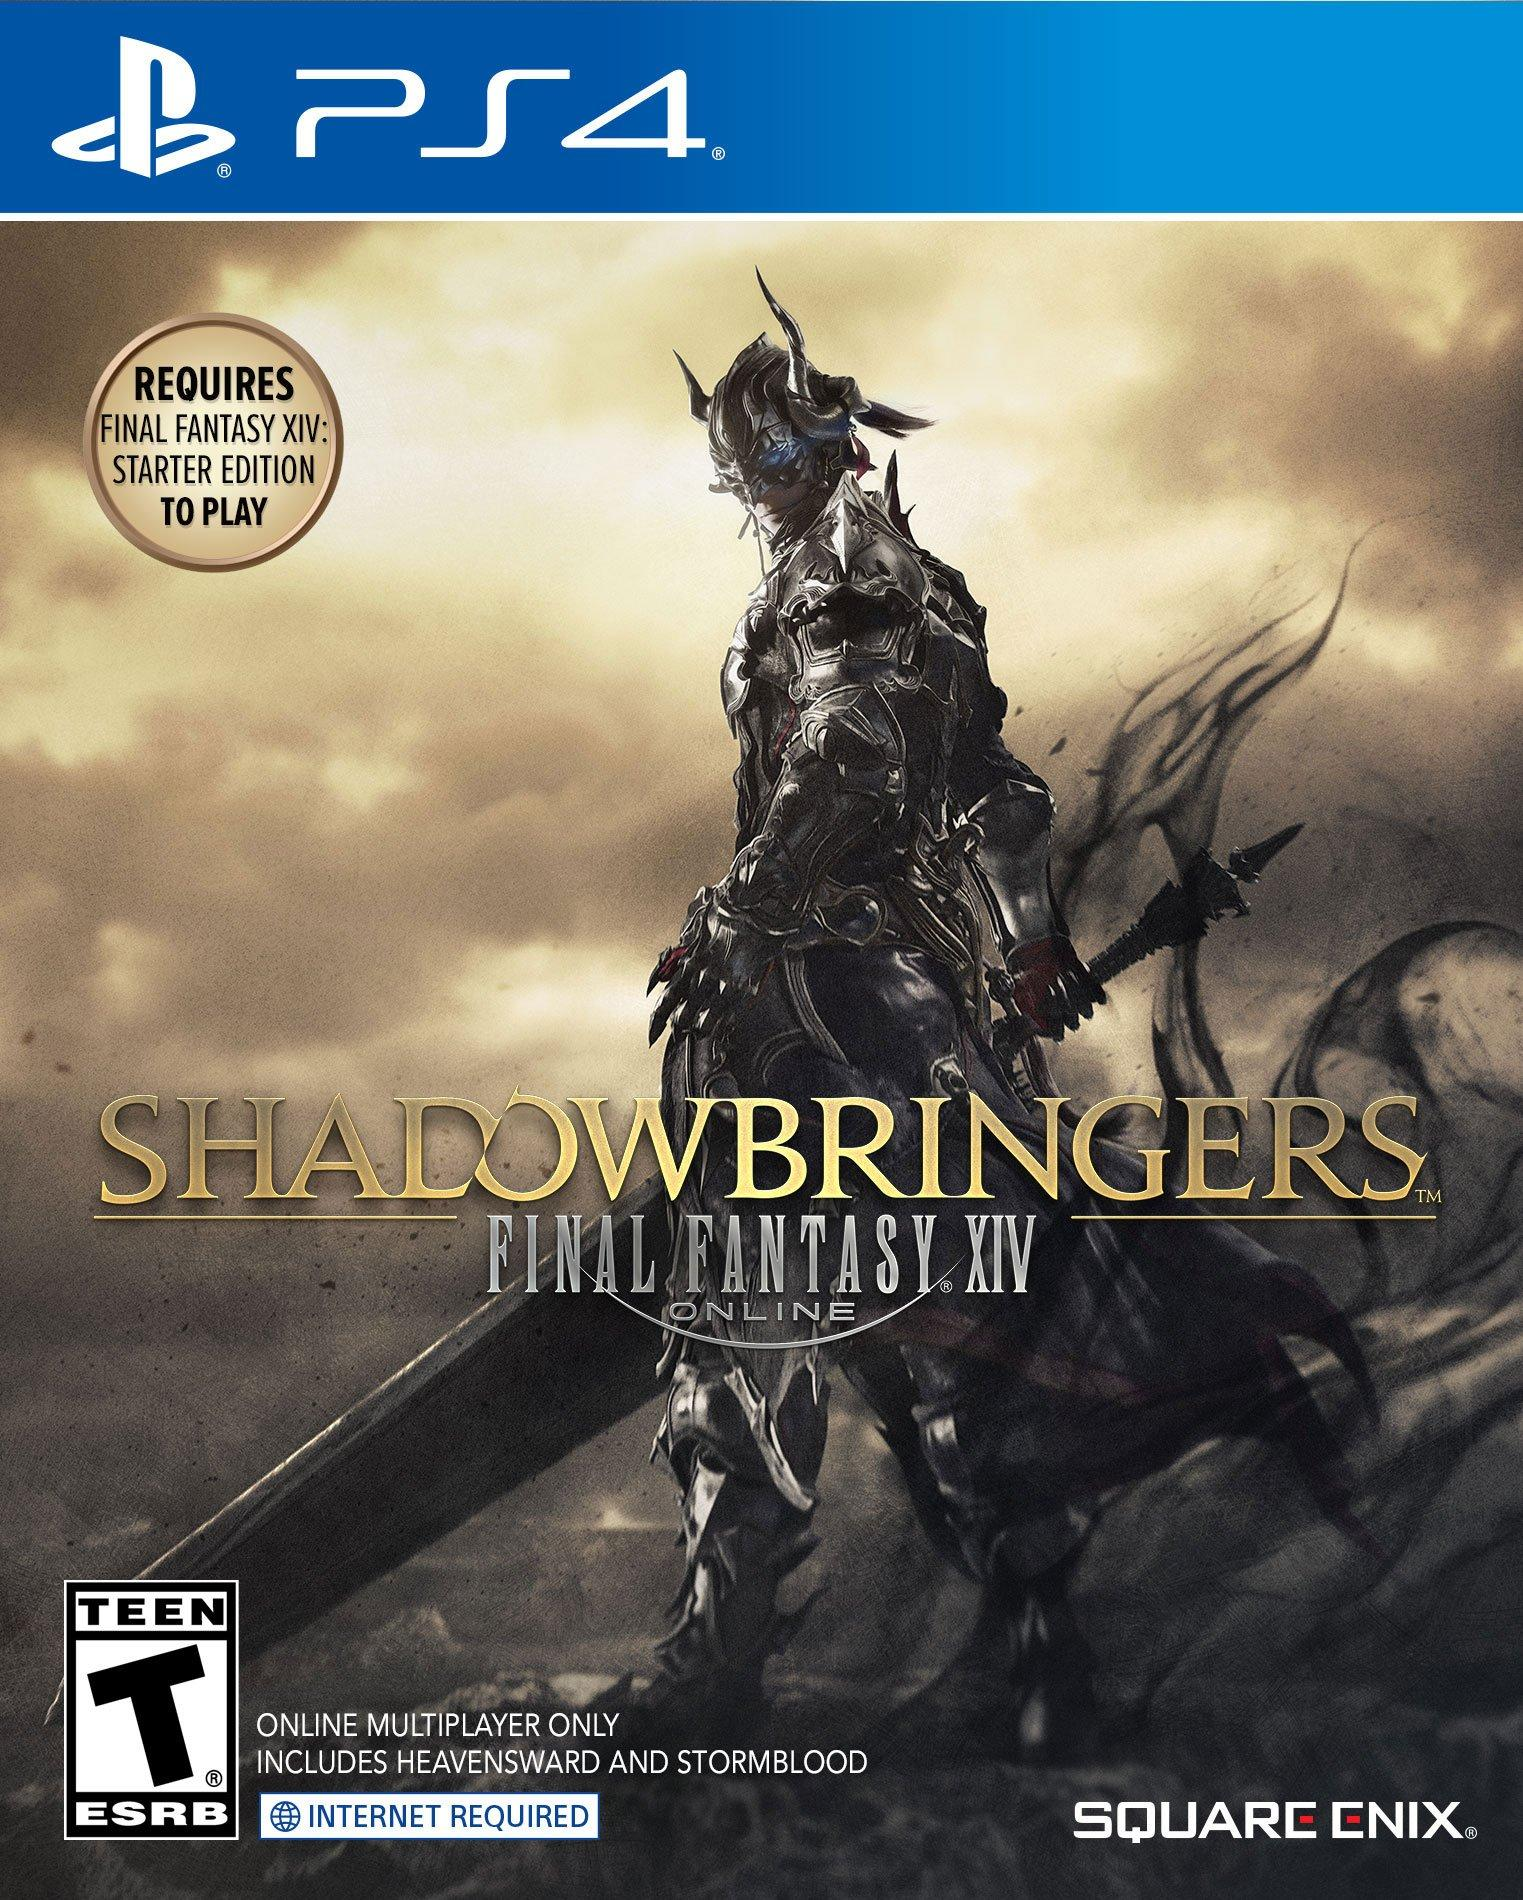 FINAL FANTASY XIV: Shadowbringers | PlayStation 4